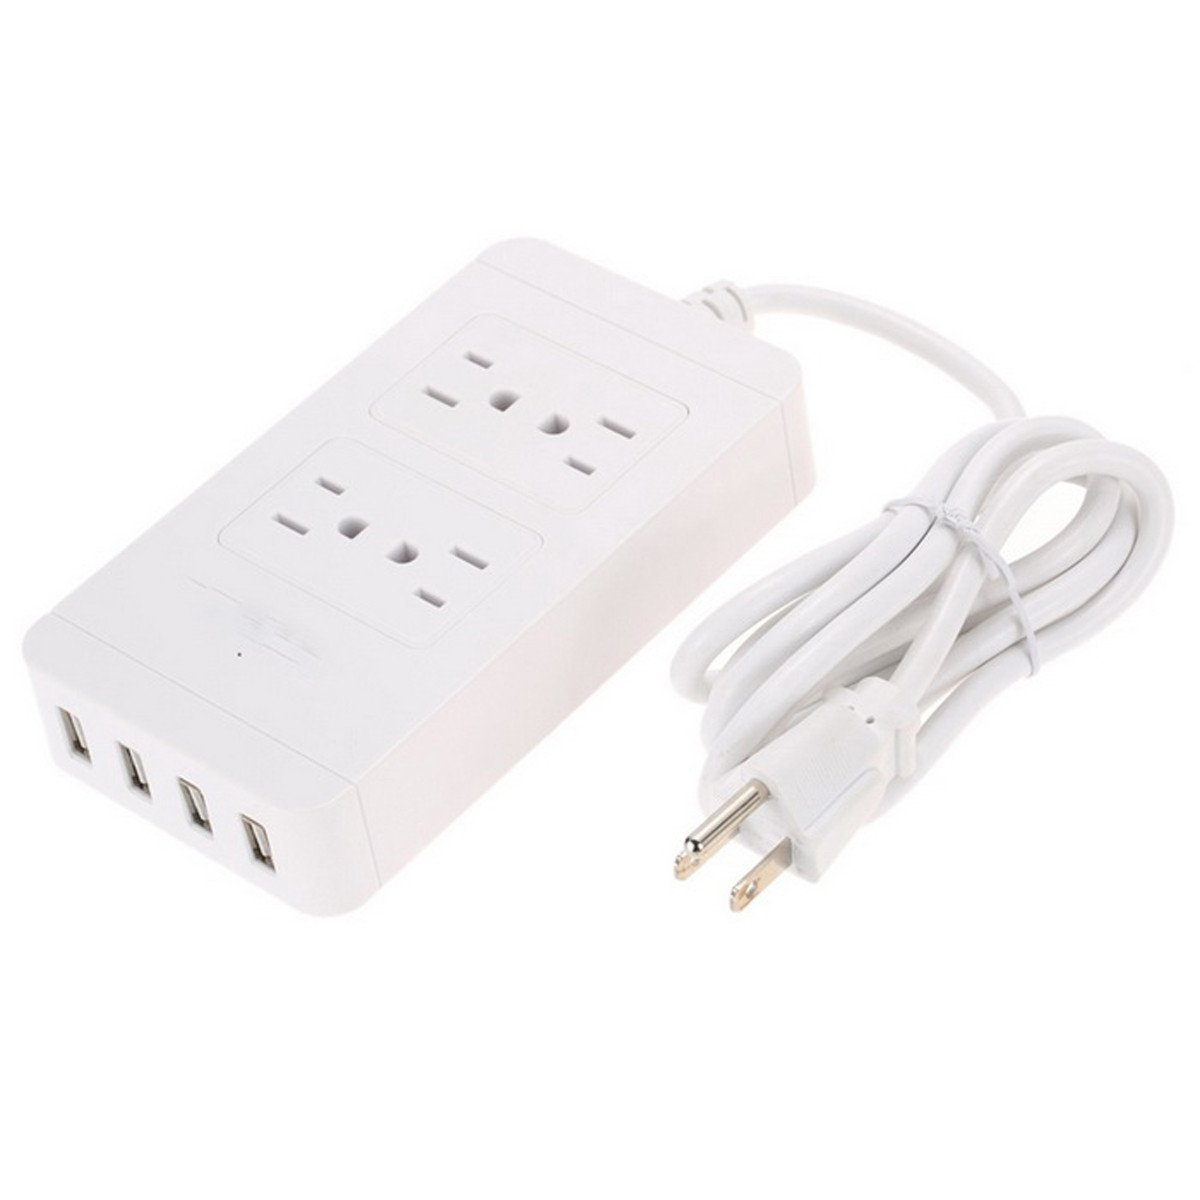 Iextreme 4 USB Port Power Supply Board Socket Charger - White